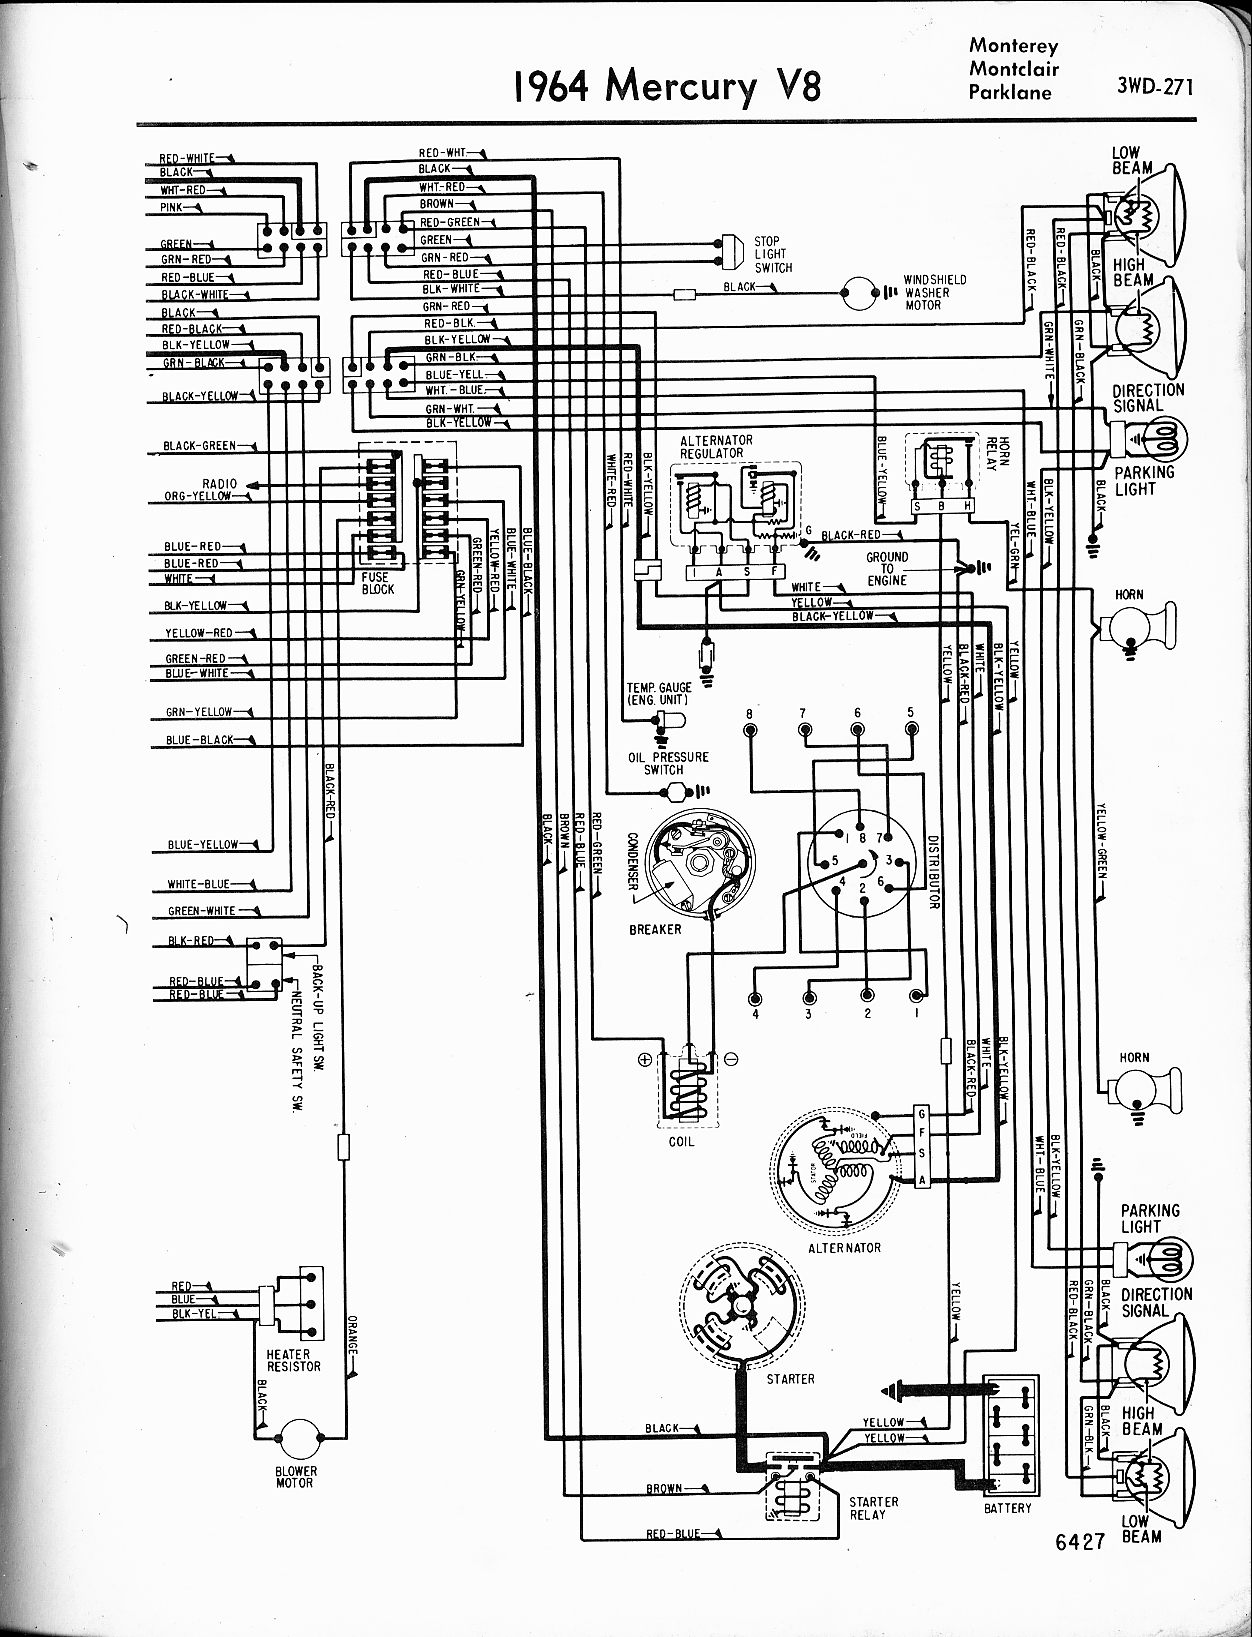 MWire5765 271 mercury wiring diagrams the old car manual project mercury wiring diagram at webbmarketing.co